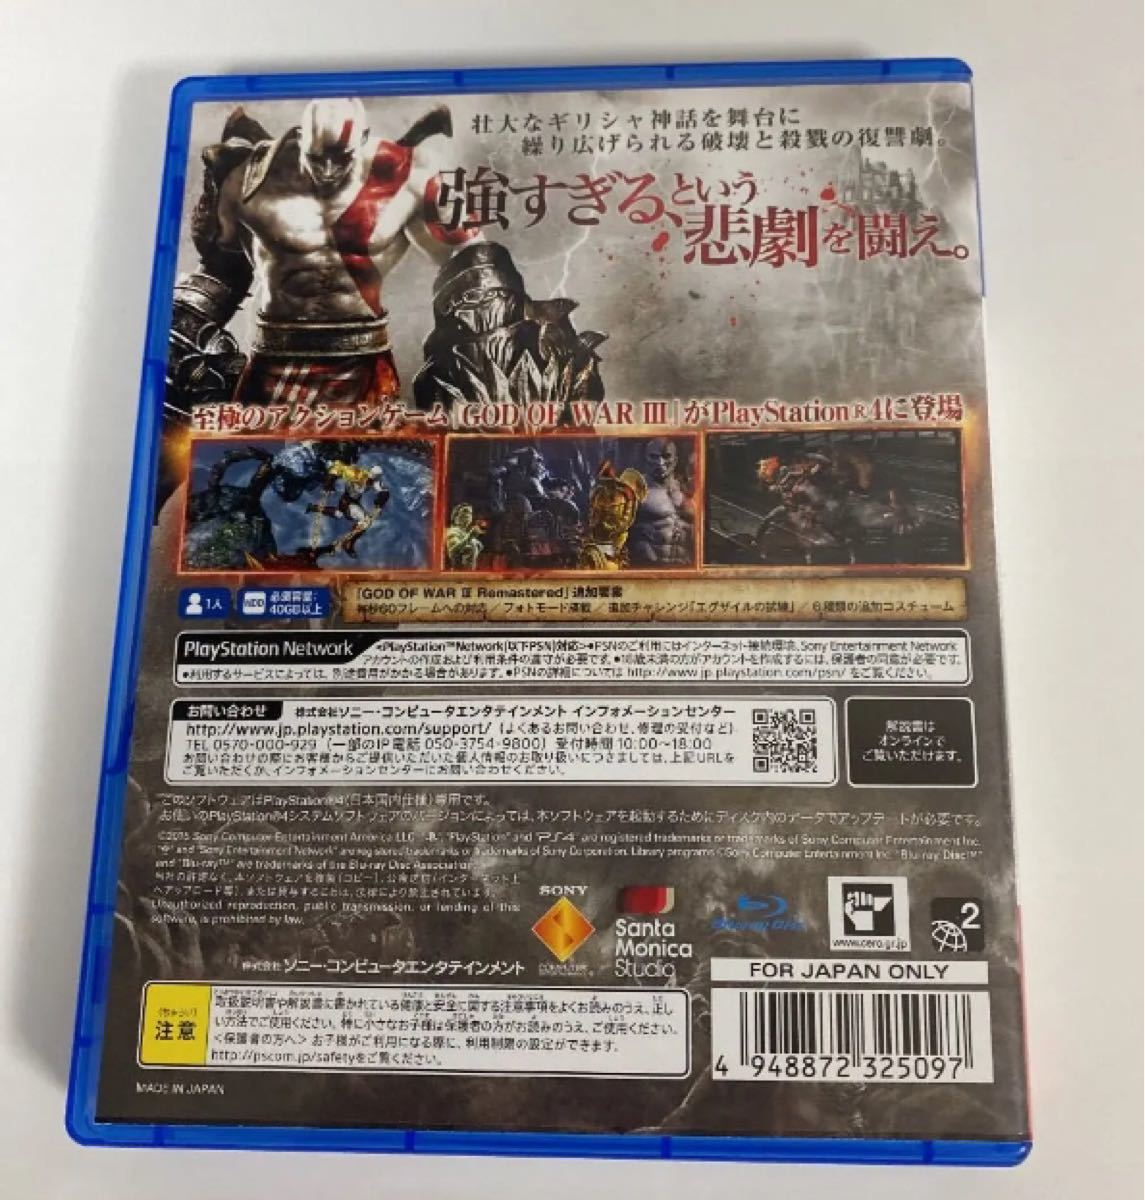 【PS4】 GOD OF WAR III Remastered [通常版]